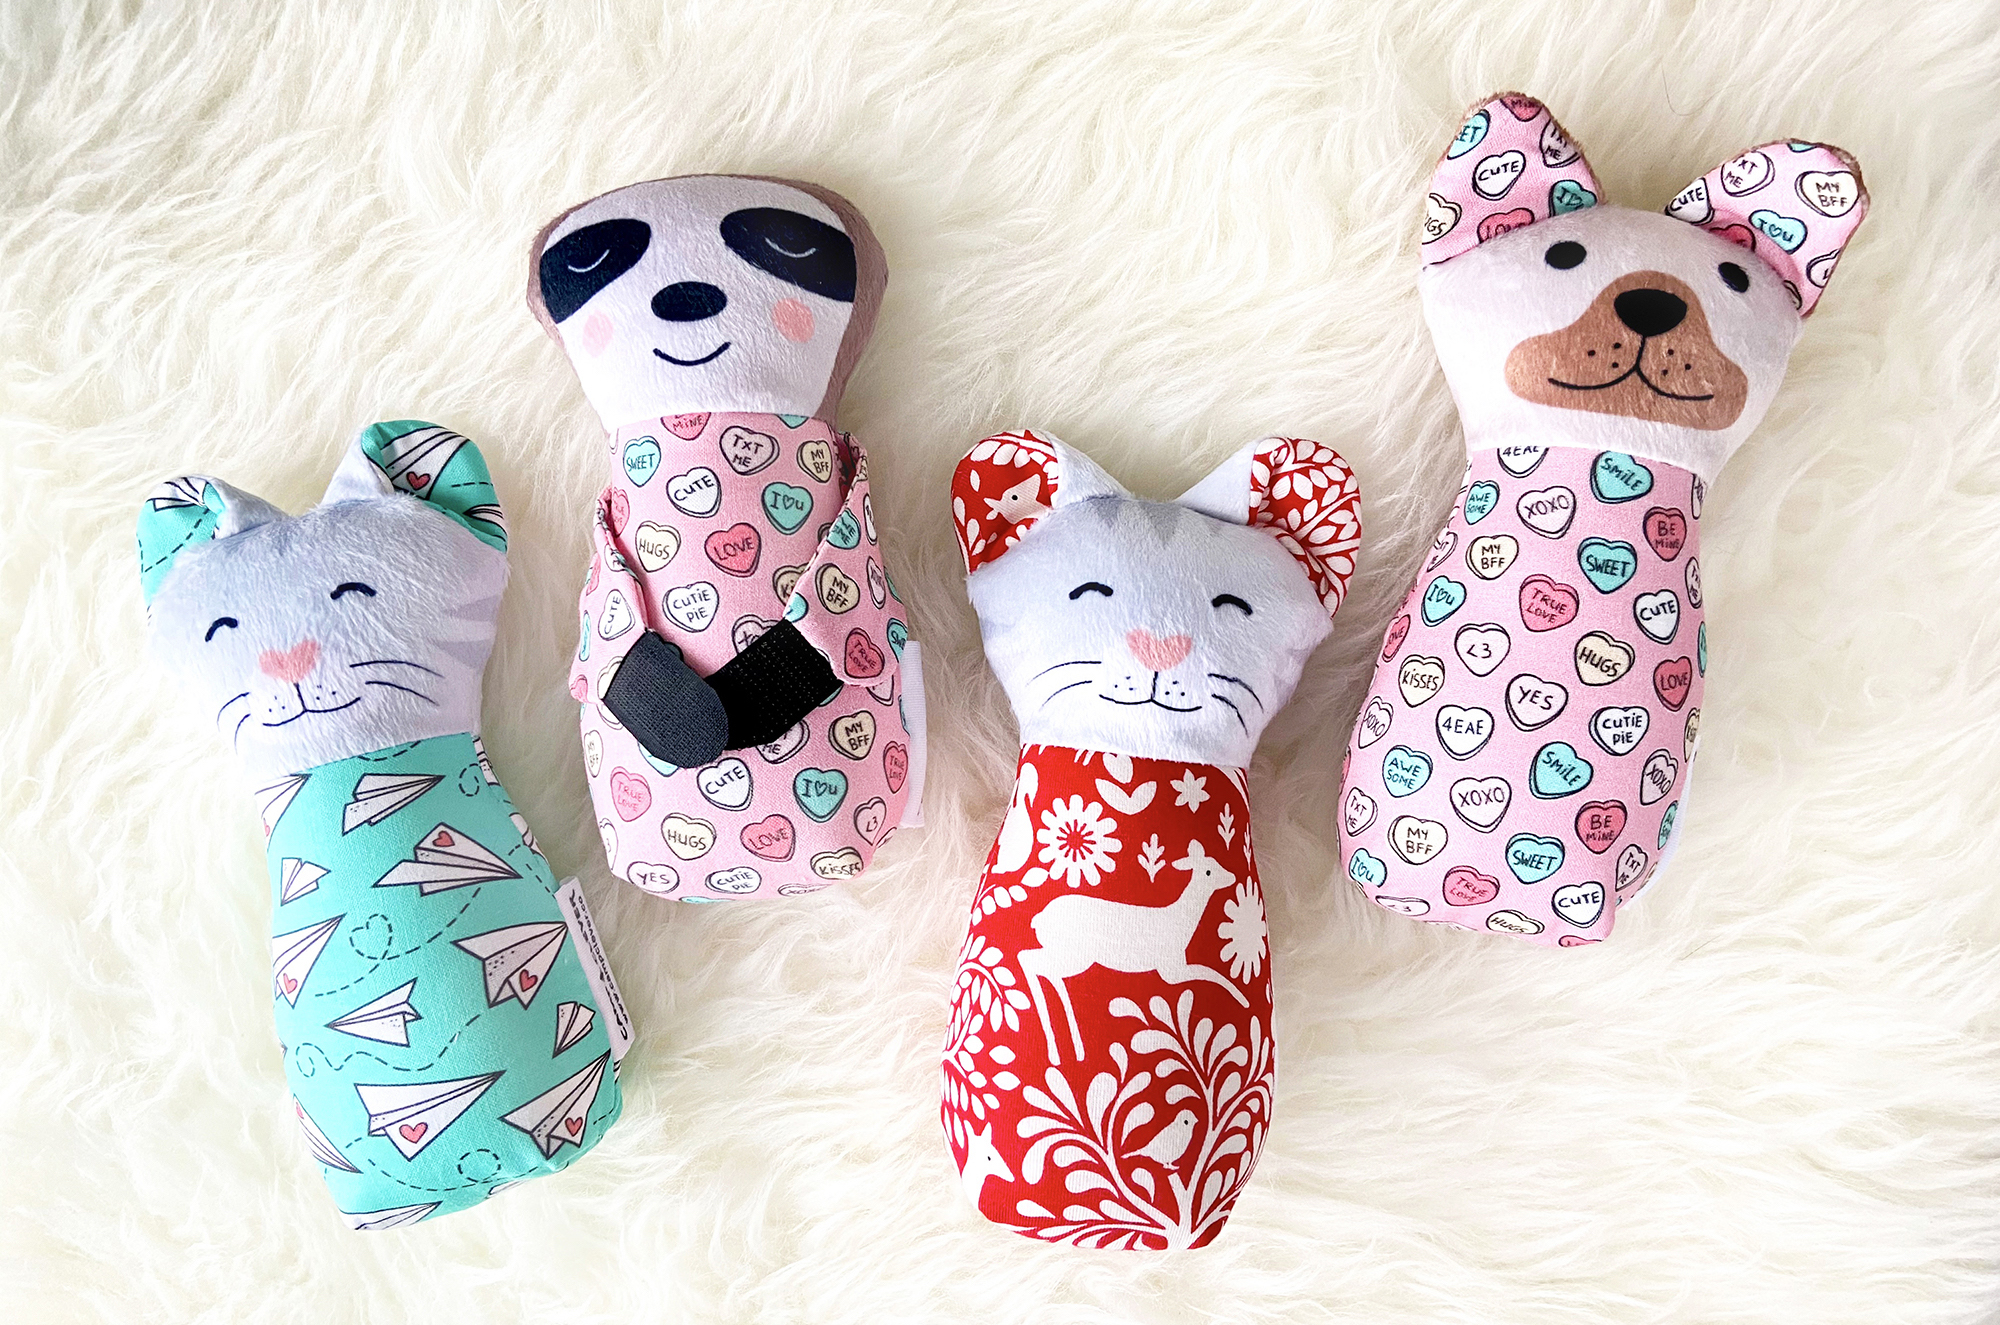 Custom plush animals with Valentine's Day themed surface patterns